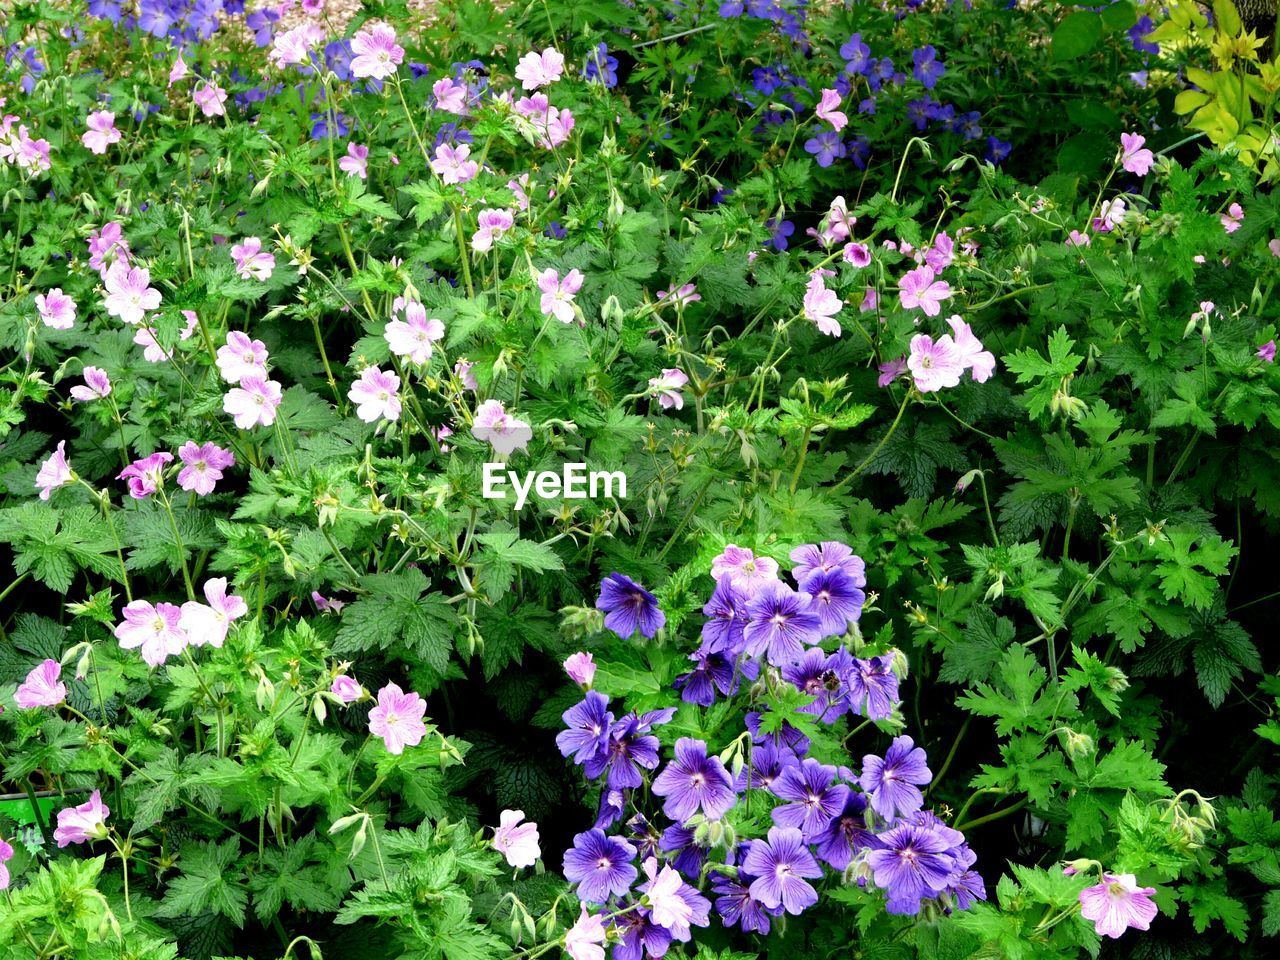 Full Frame View Of Flowers With Leaves